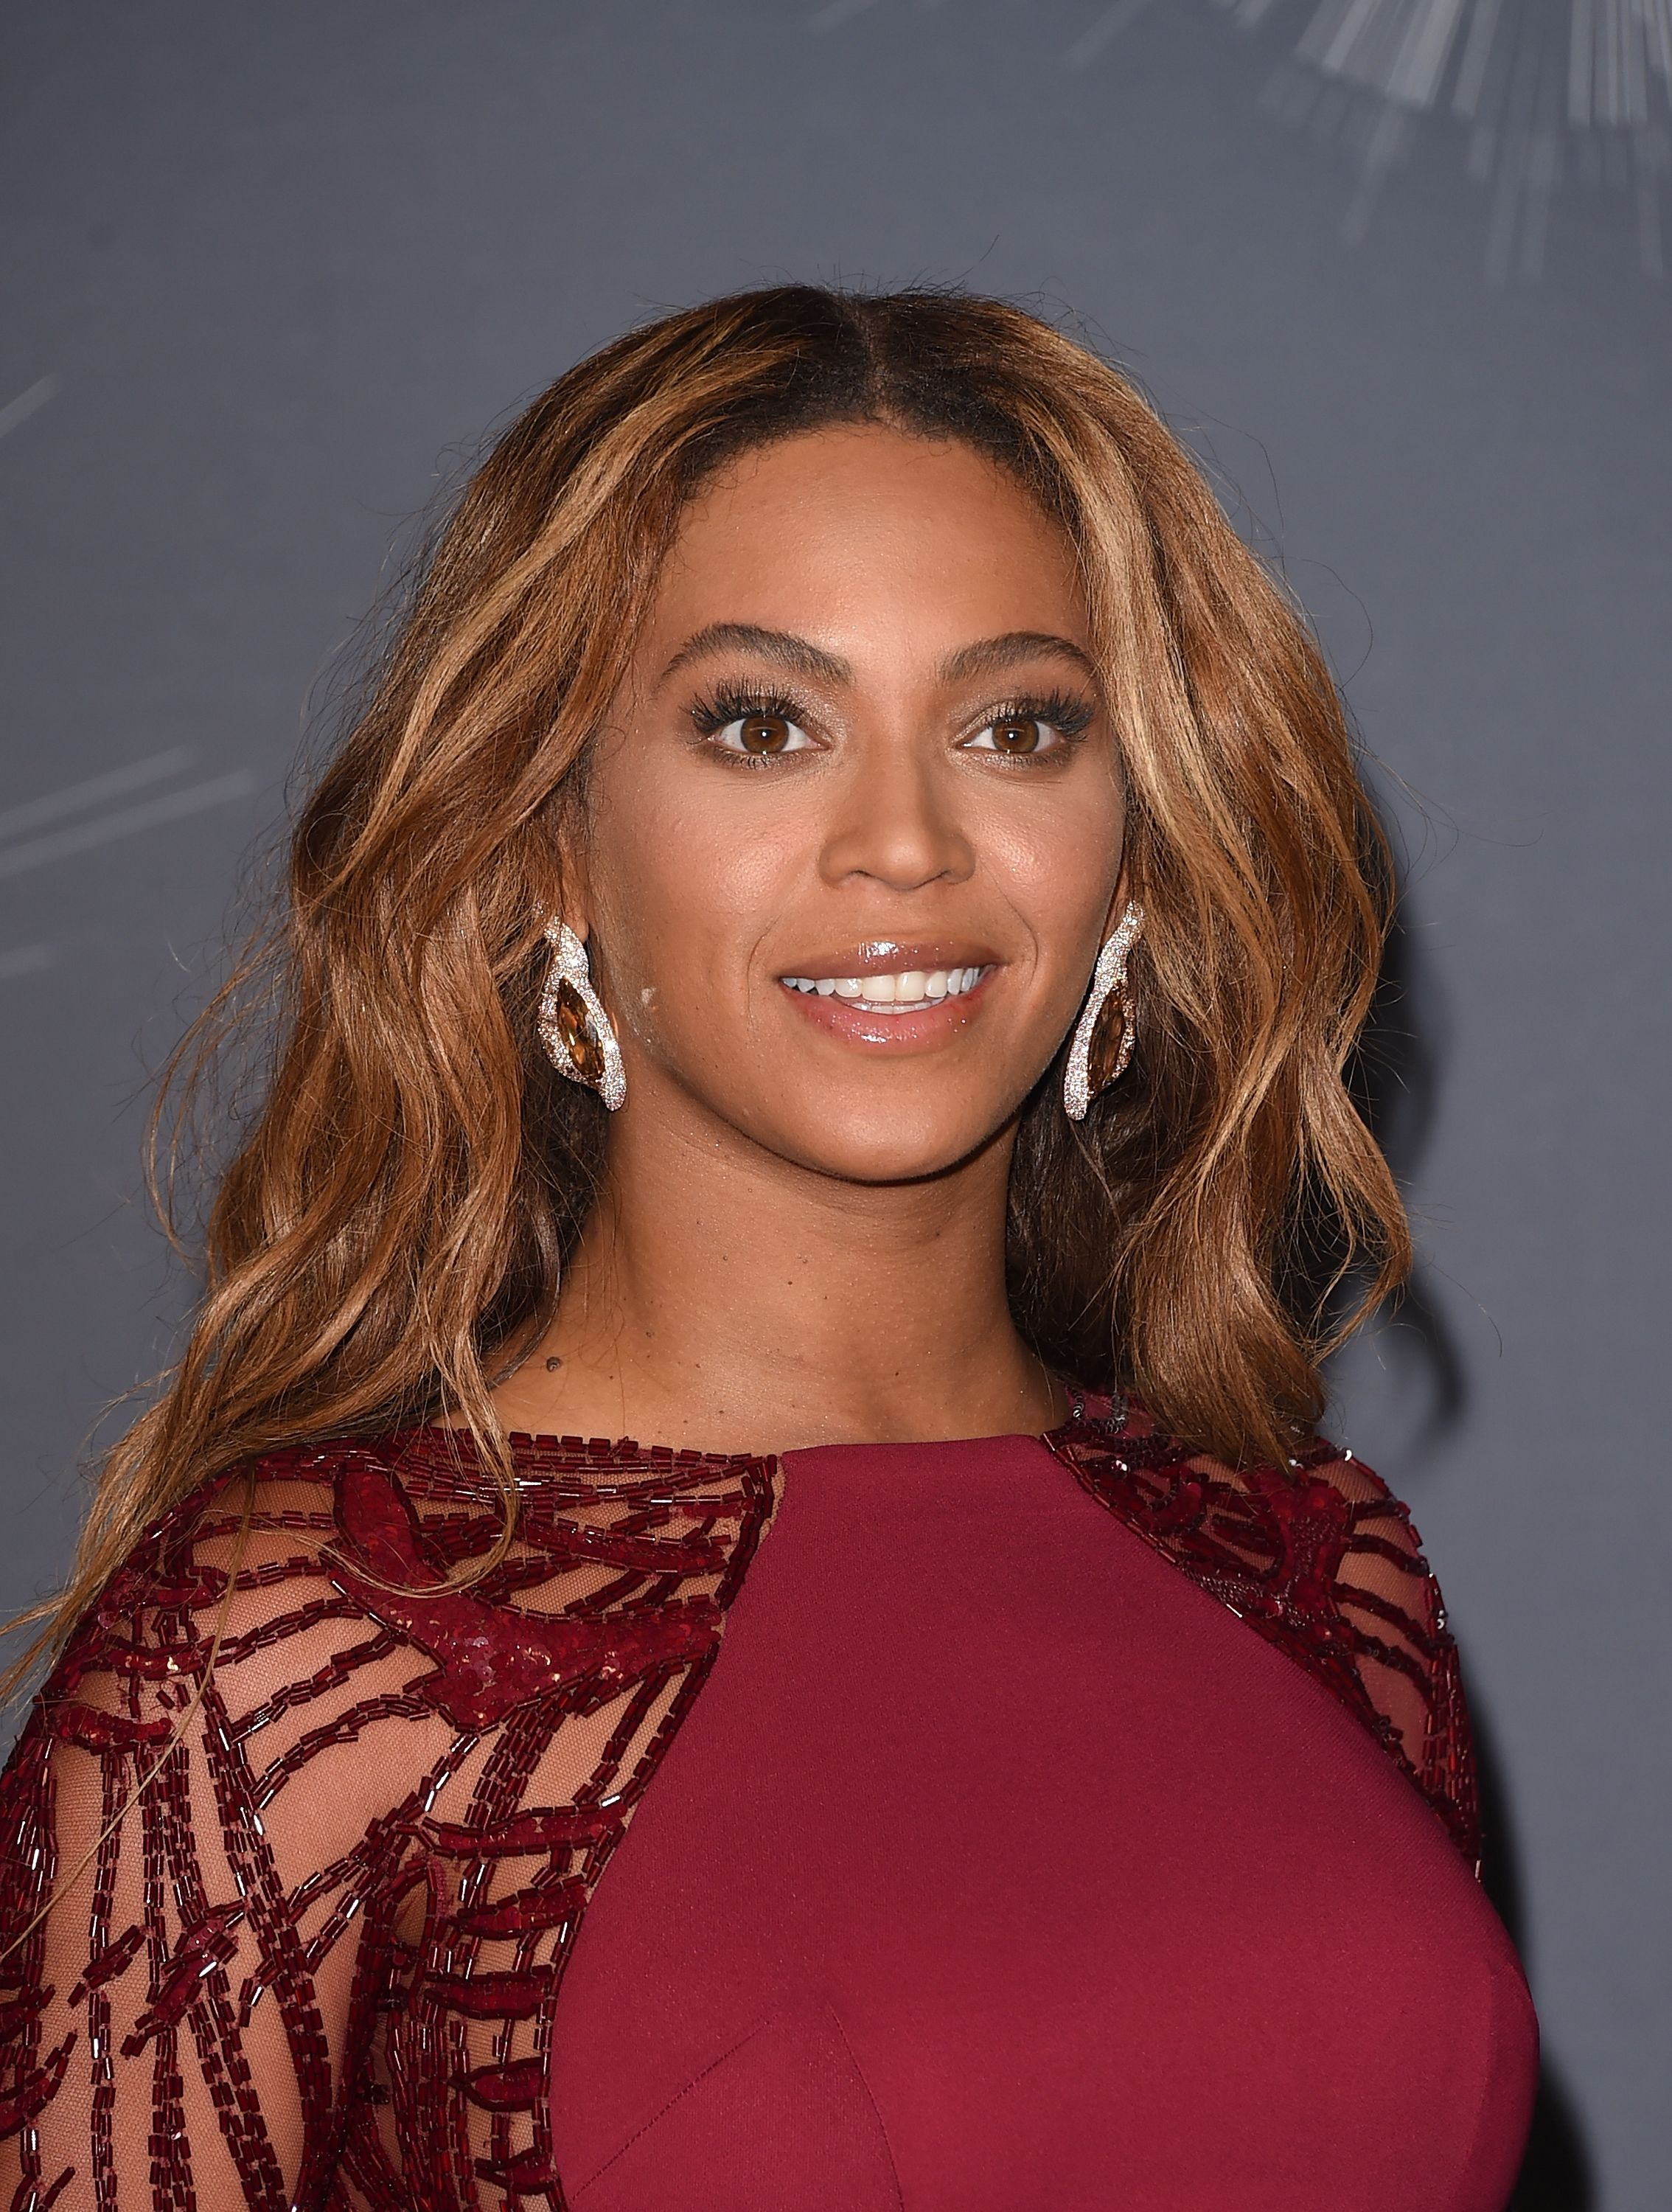 Beyoncé arrives on the red carpet at the MTV Video Music Awards on August 24, 2014 in Inglewood, California | Photo: Getty Images